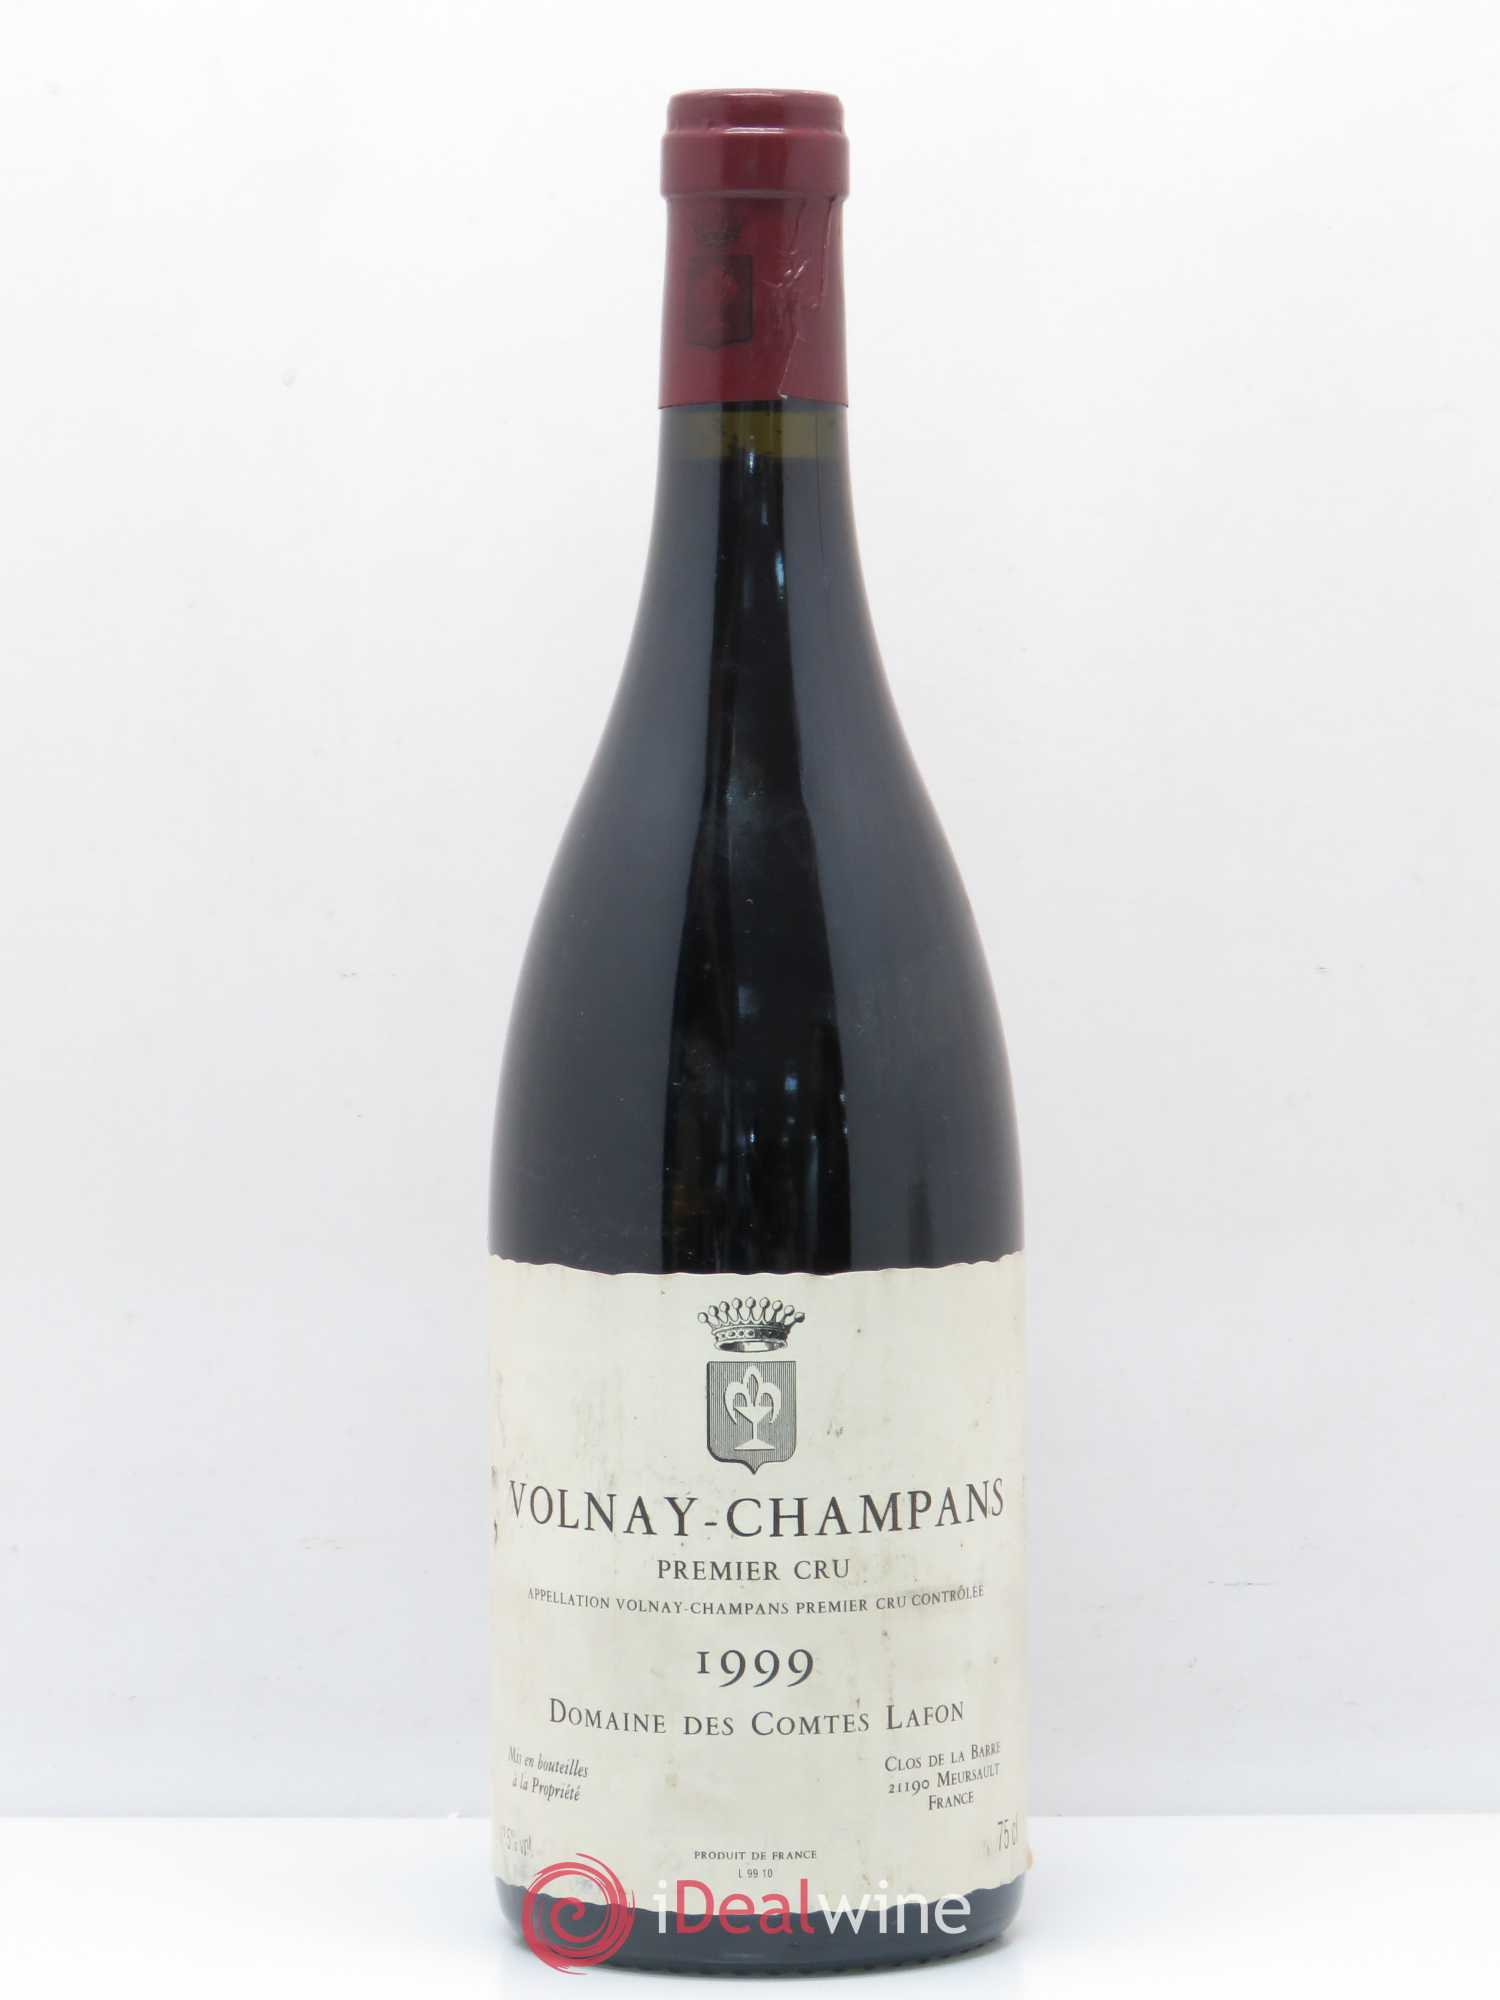 Volnay 1er Cru Champans Comtes Lafon (Domaine des)  1999 - Lot of 1 Bottle